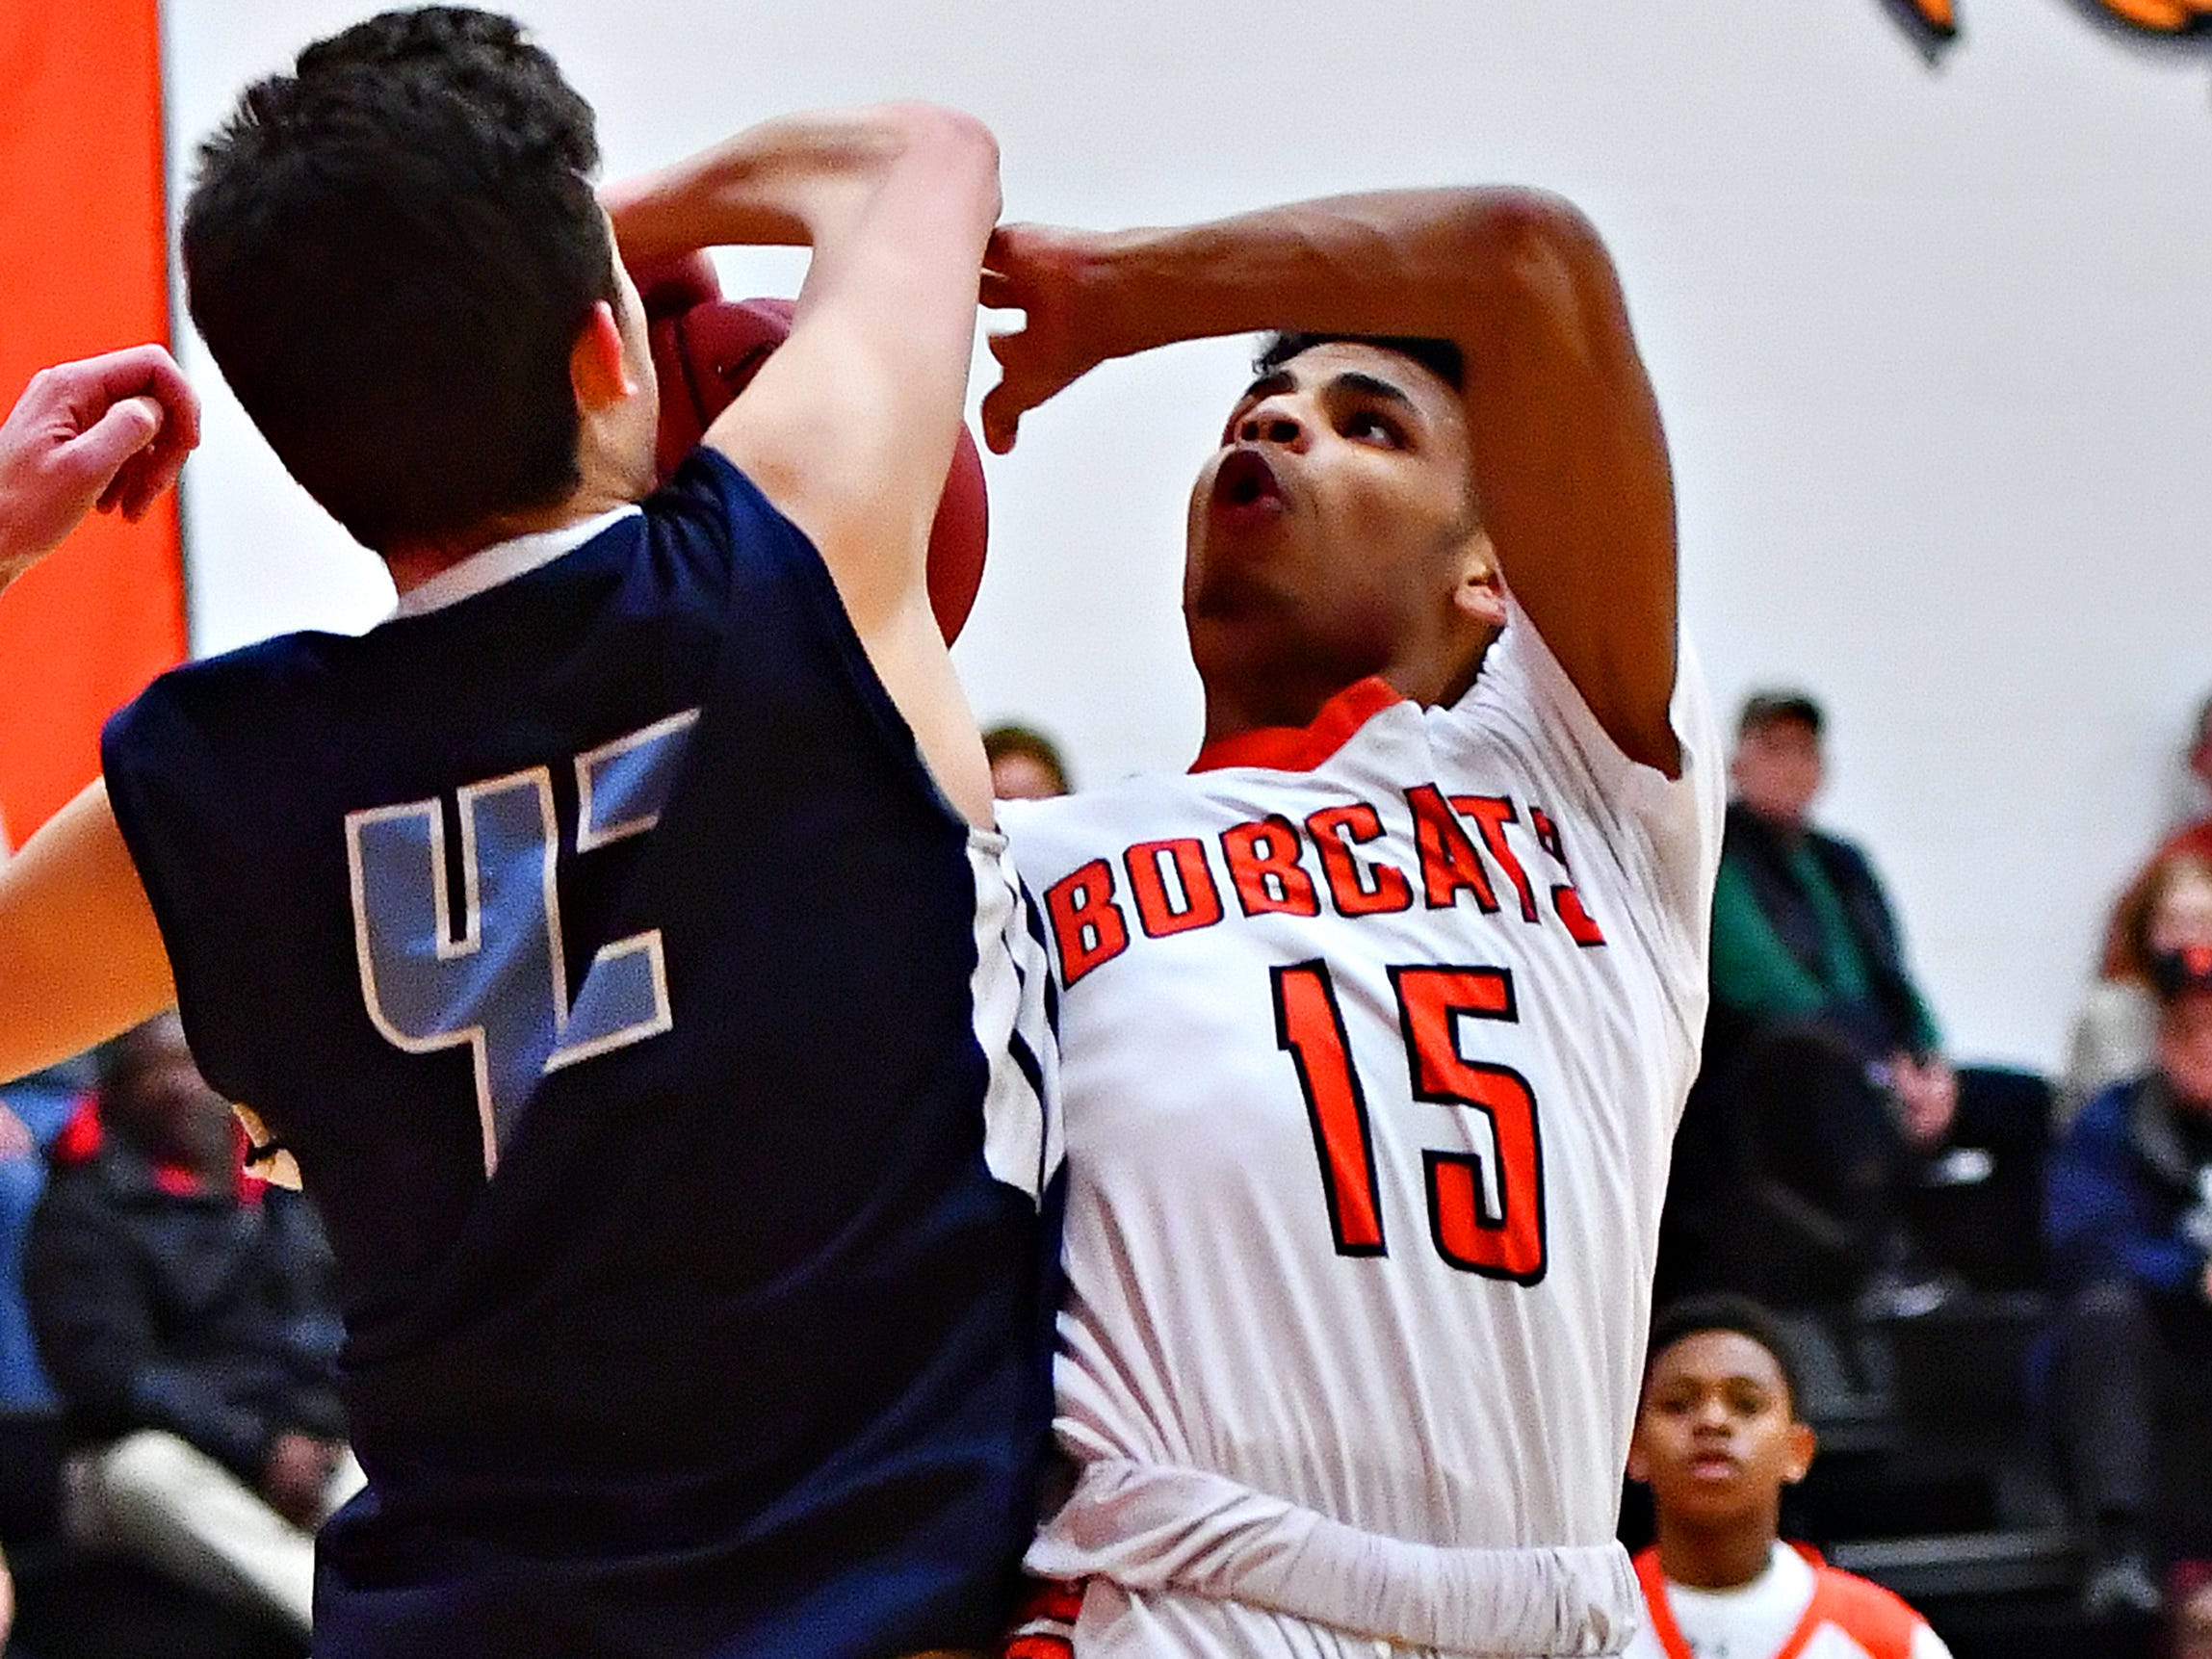 Northeastern's Maurice Capo, right, is fouled by Manheim Township's Tyler Vicidomini during basketball action at Northeastern Senior High School in Manchester, Wednesday, Jan. 9, 2019. Northeastern would win the game 47-46. Dawn J. Sagert photo